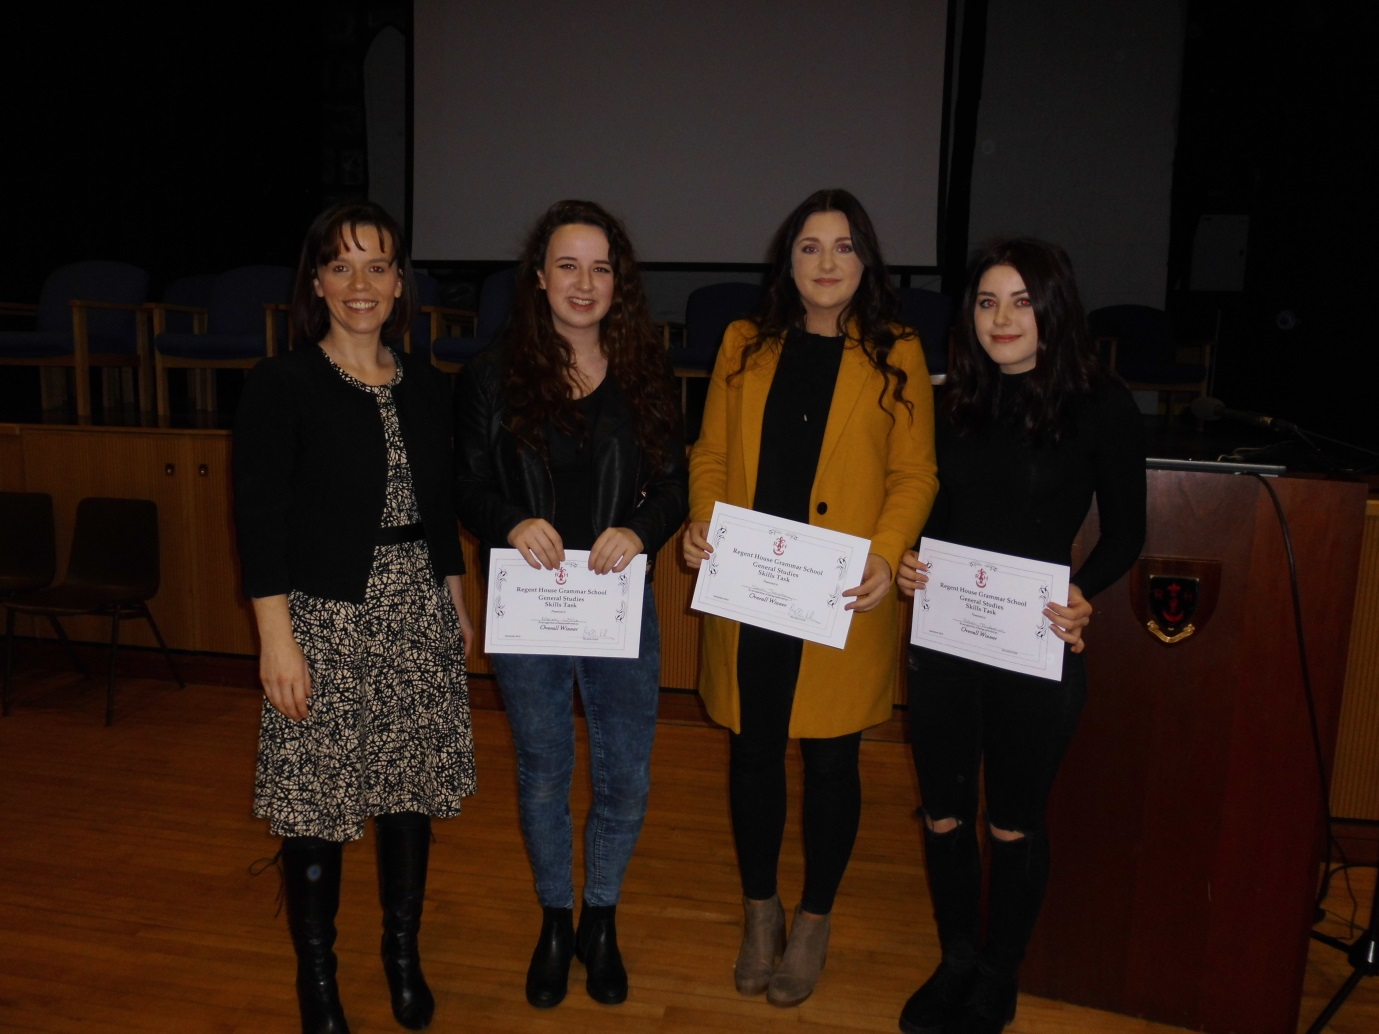 Winning team of Alexa Little, Eden Andrews and Sara Townley presented a Year 9 workshop on Body Image.